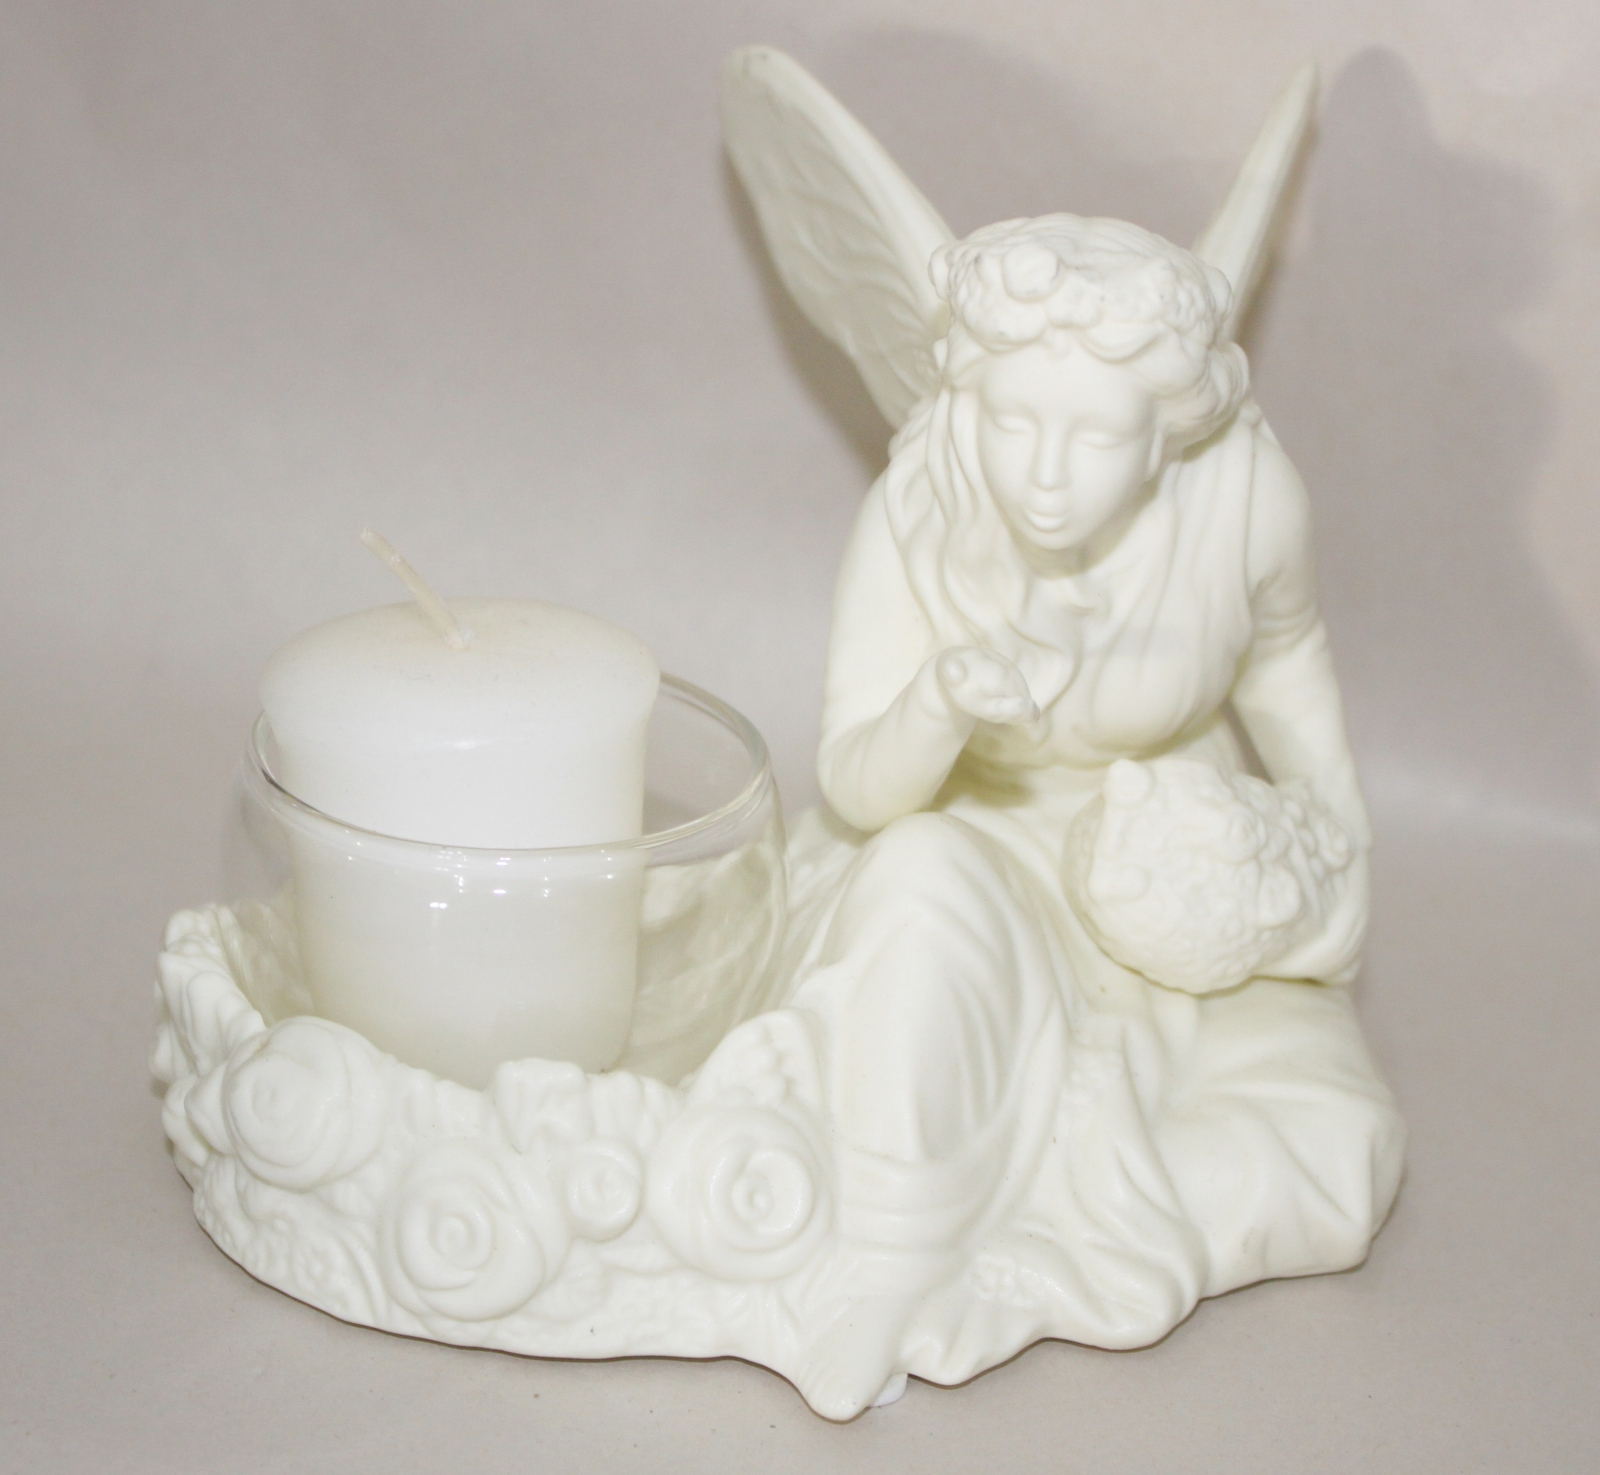 PartyLite Ariana White Fairy Candle Ceramic Tea-light Holder